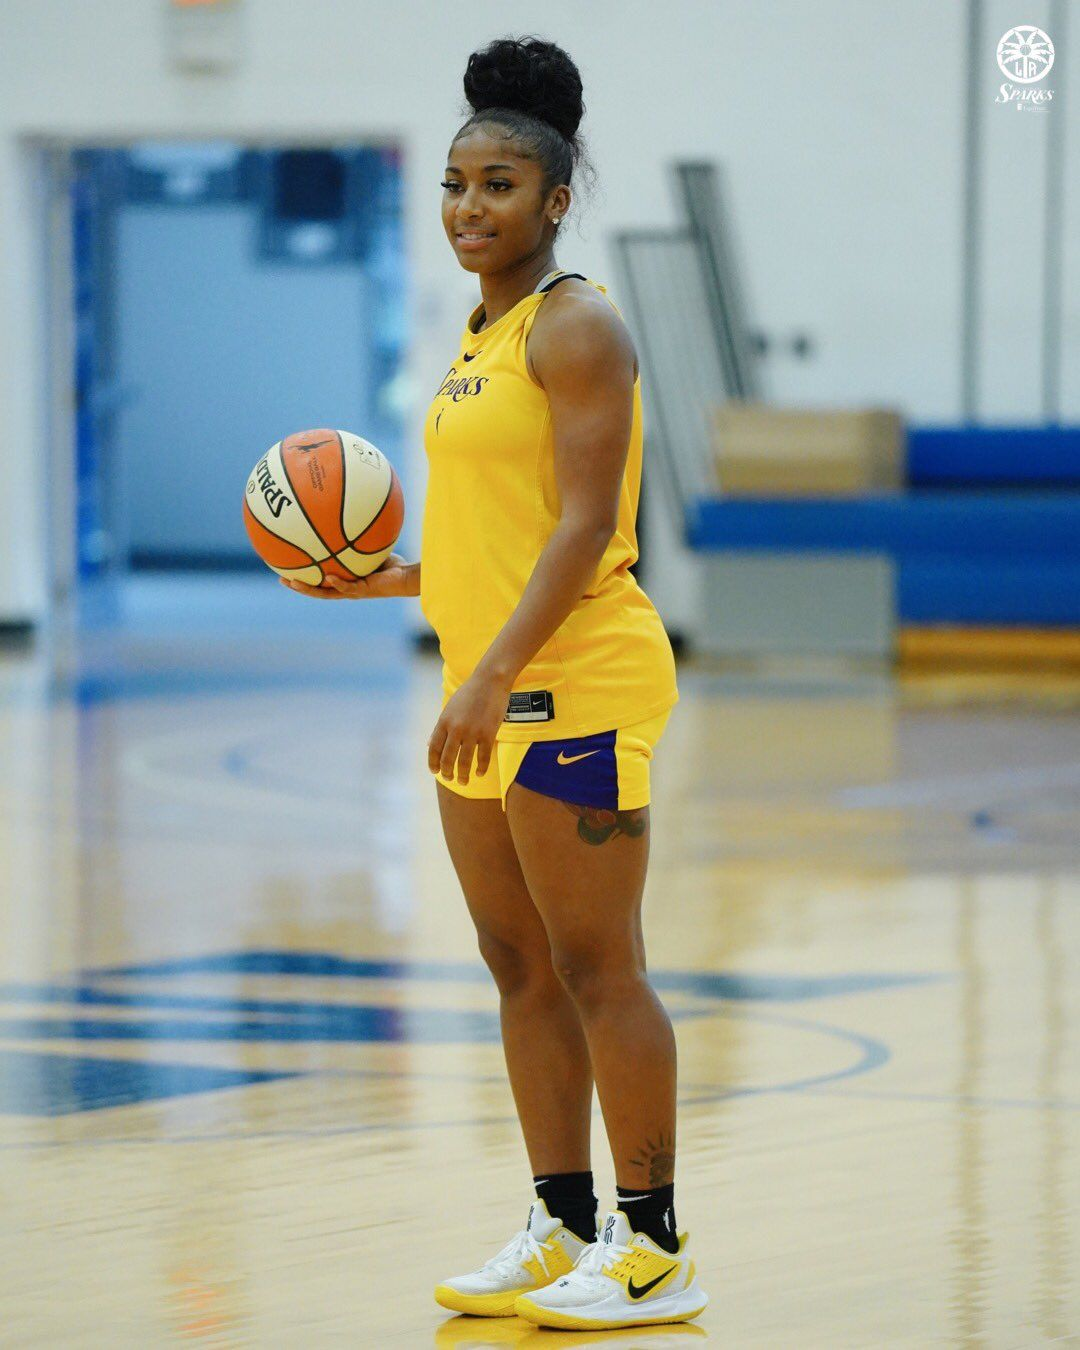 Los Angeles Sparks On Twitter In 2020 Basketball Girls Outfits Basketball Girls Womens Basketball